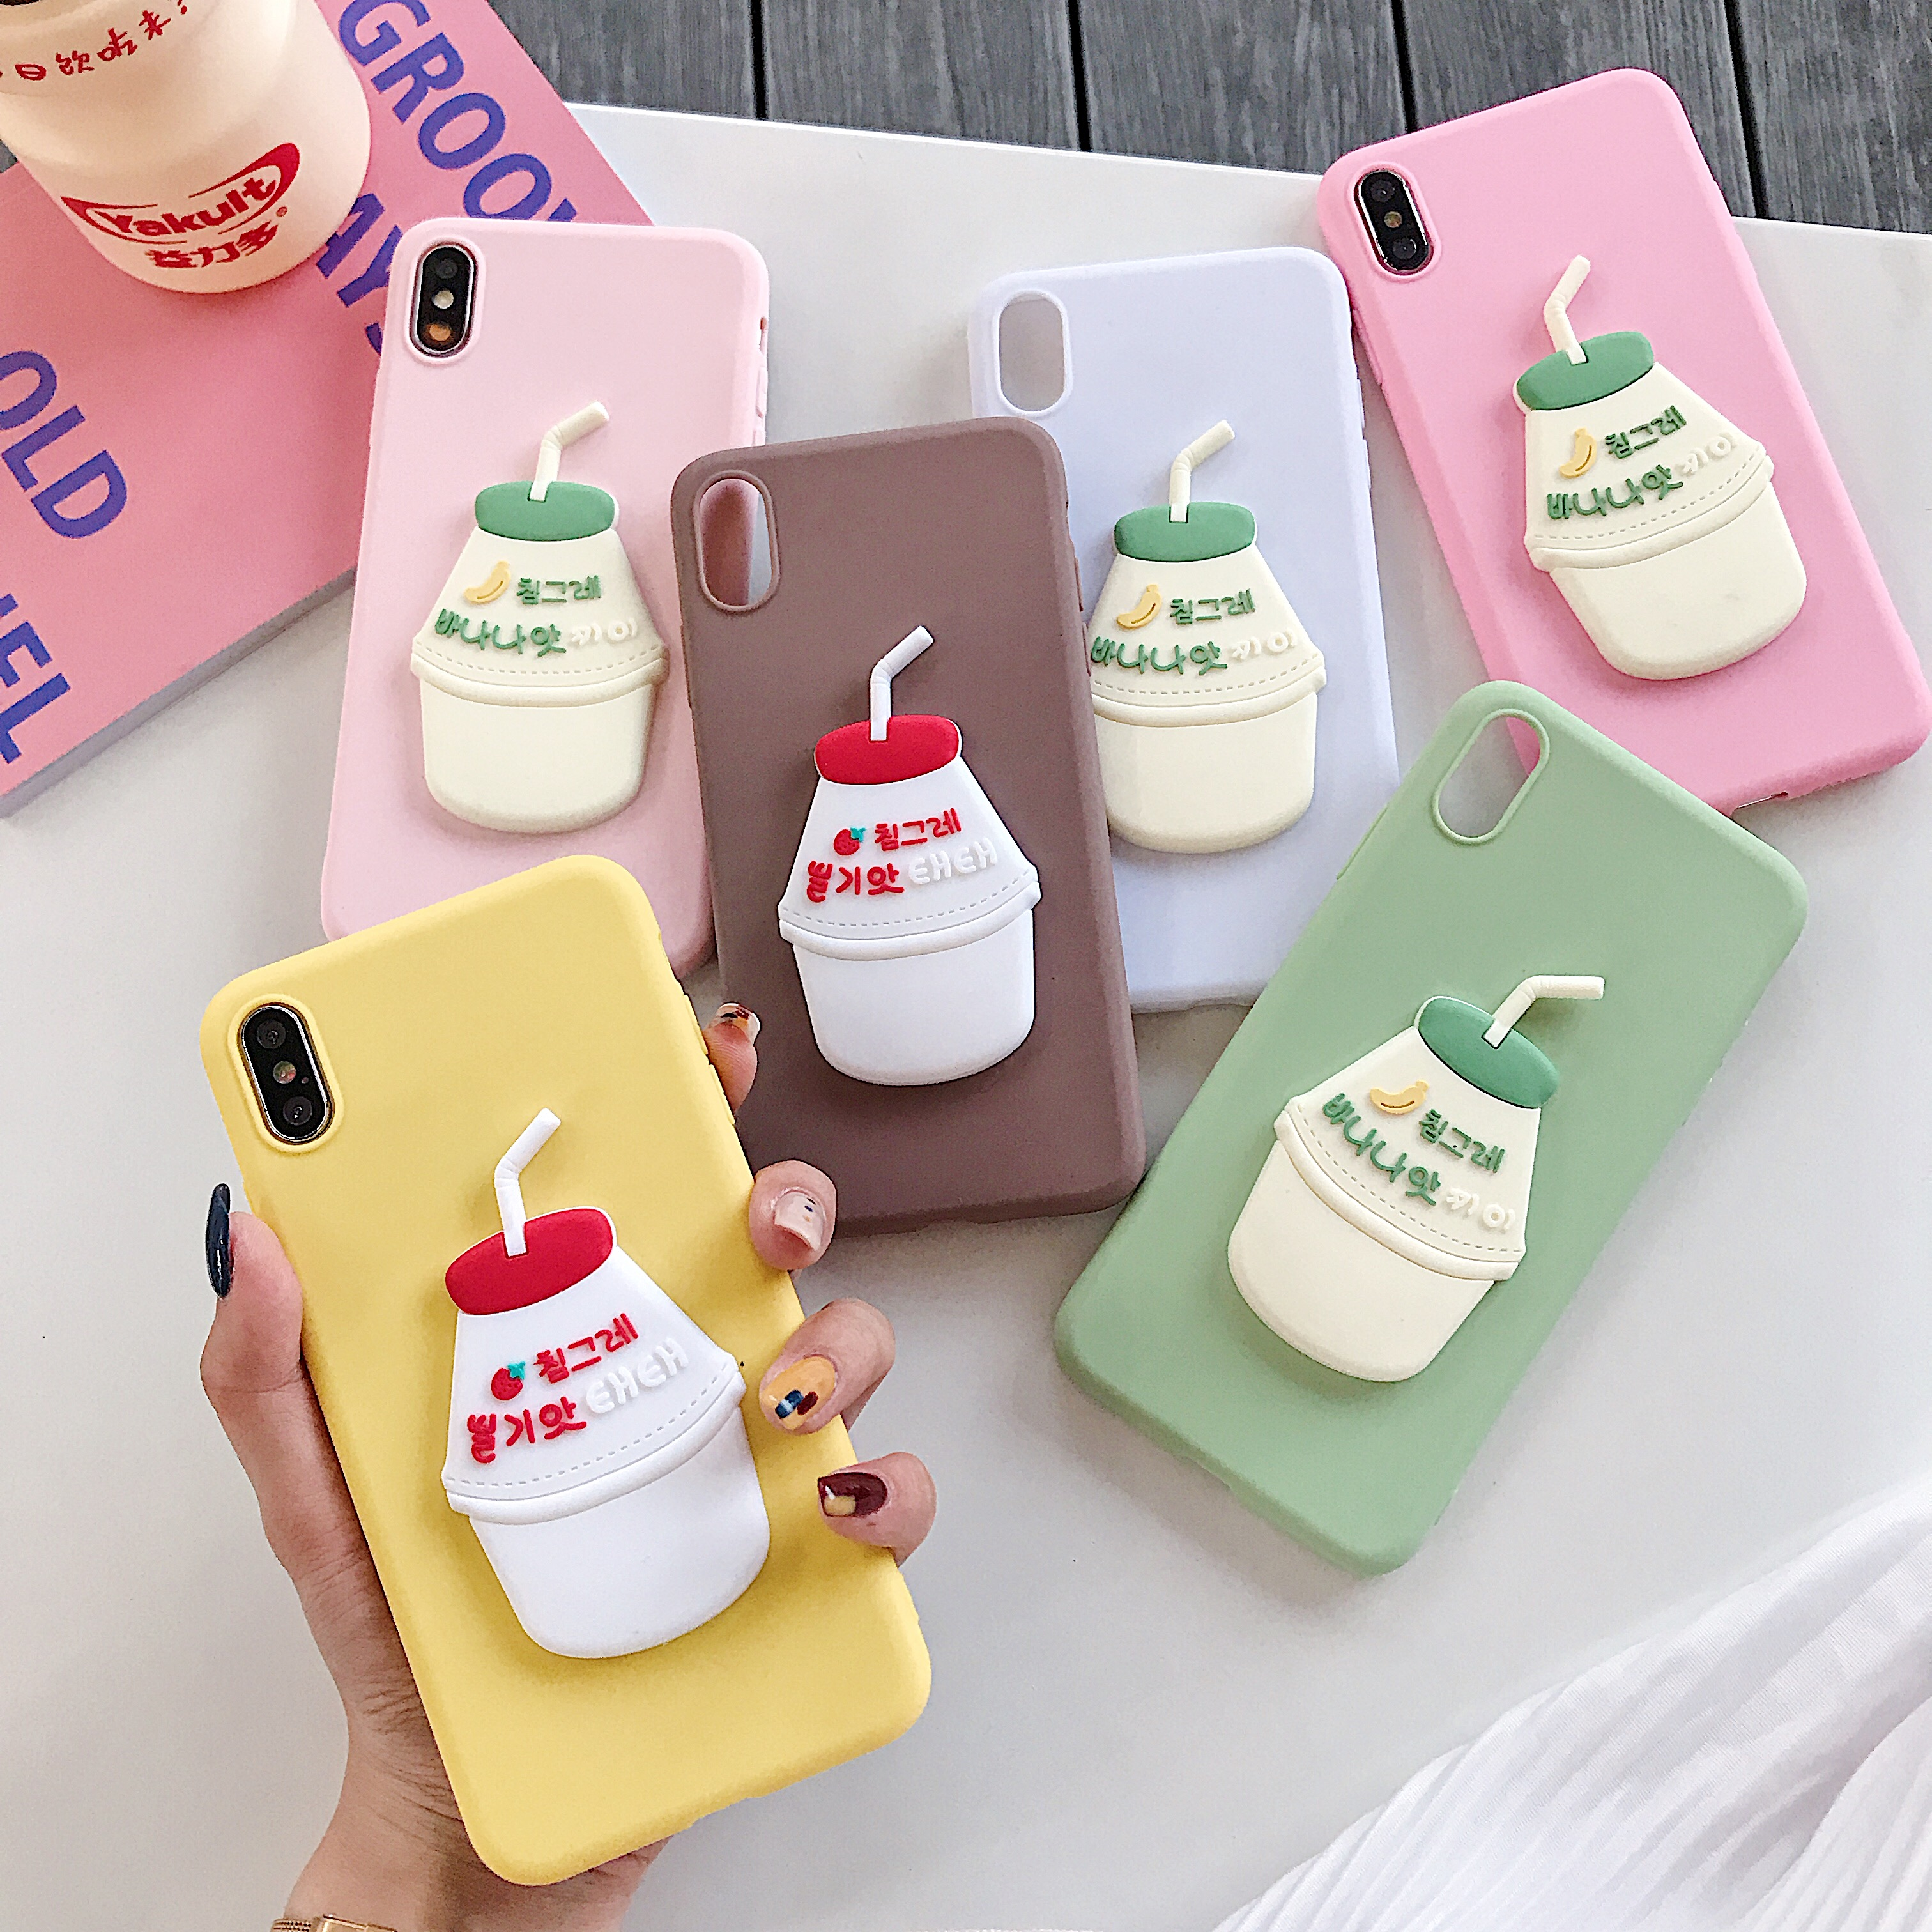 Cartoon Banana Milk Strawberry Drink <font><b>Phone</b></font> <font><b>Case</b></font> For <font><b>Samsung</b></font> galaxy S10 plus S10E S9 S8 plus <font><b>S7</b></font> S6 Soft Silicone Back Cover <font><b>Cases</b></font> image